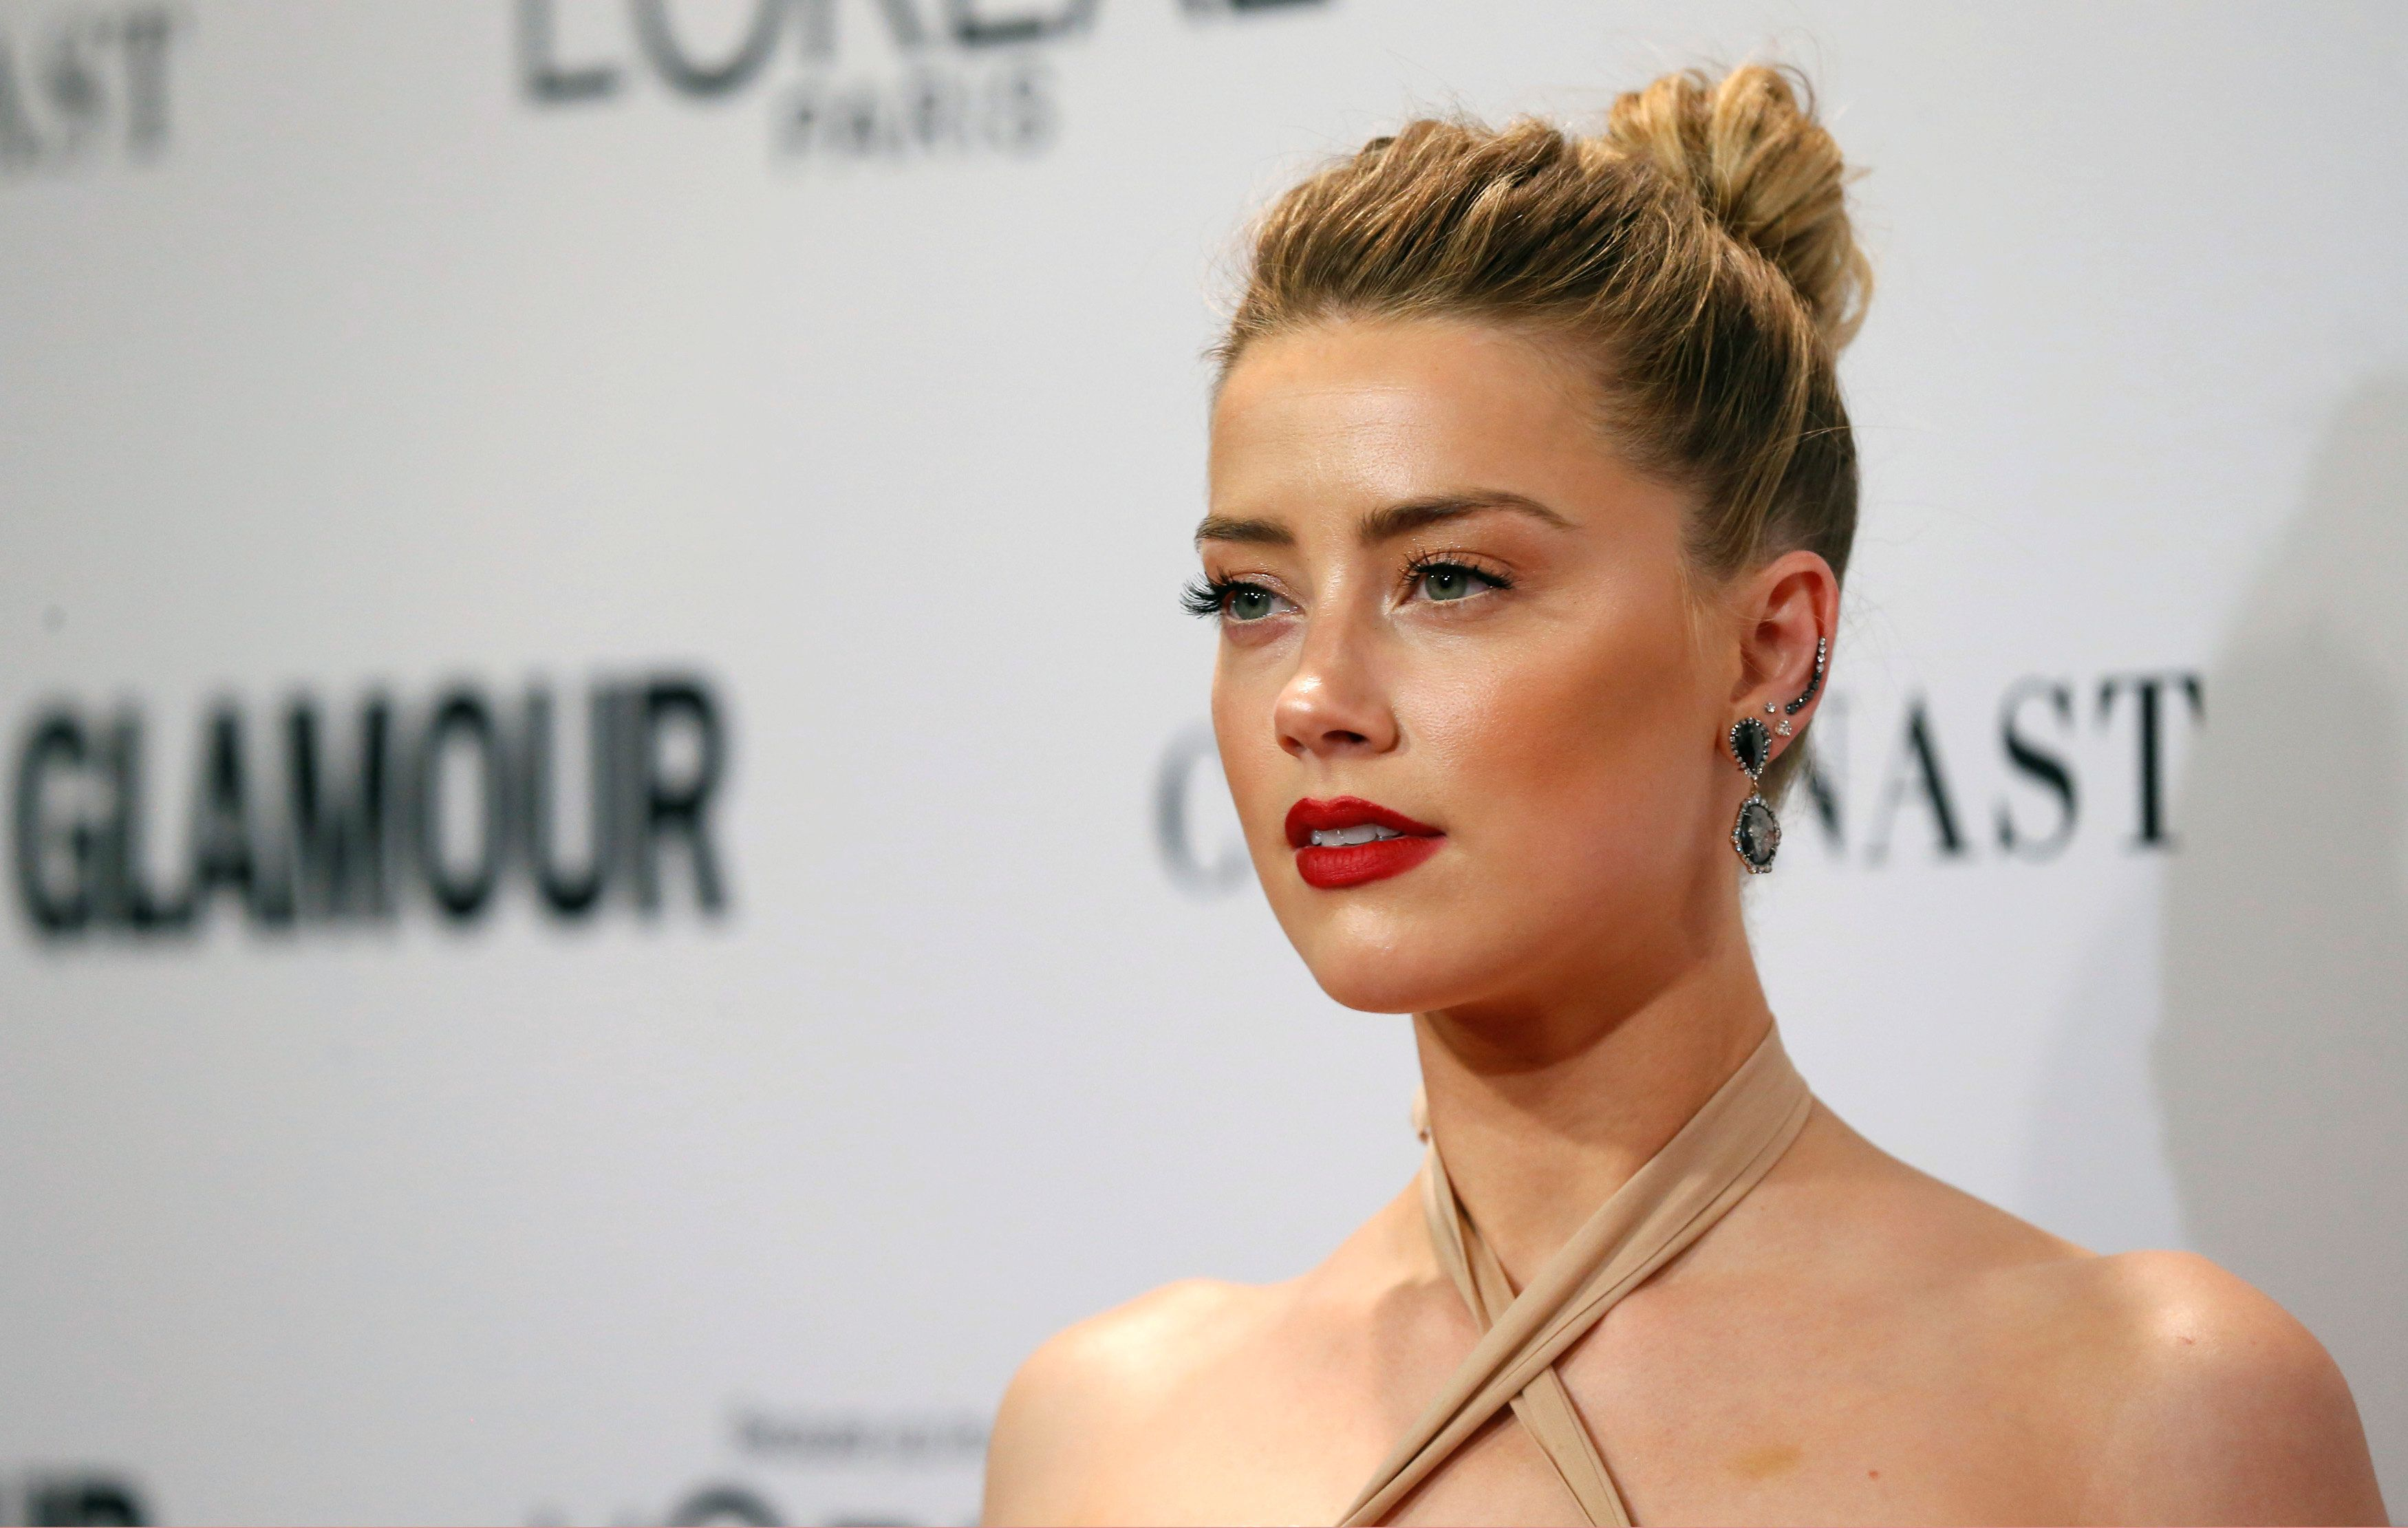 Amber Heard Opens Up About Why She Doesn't Label Her